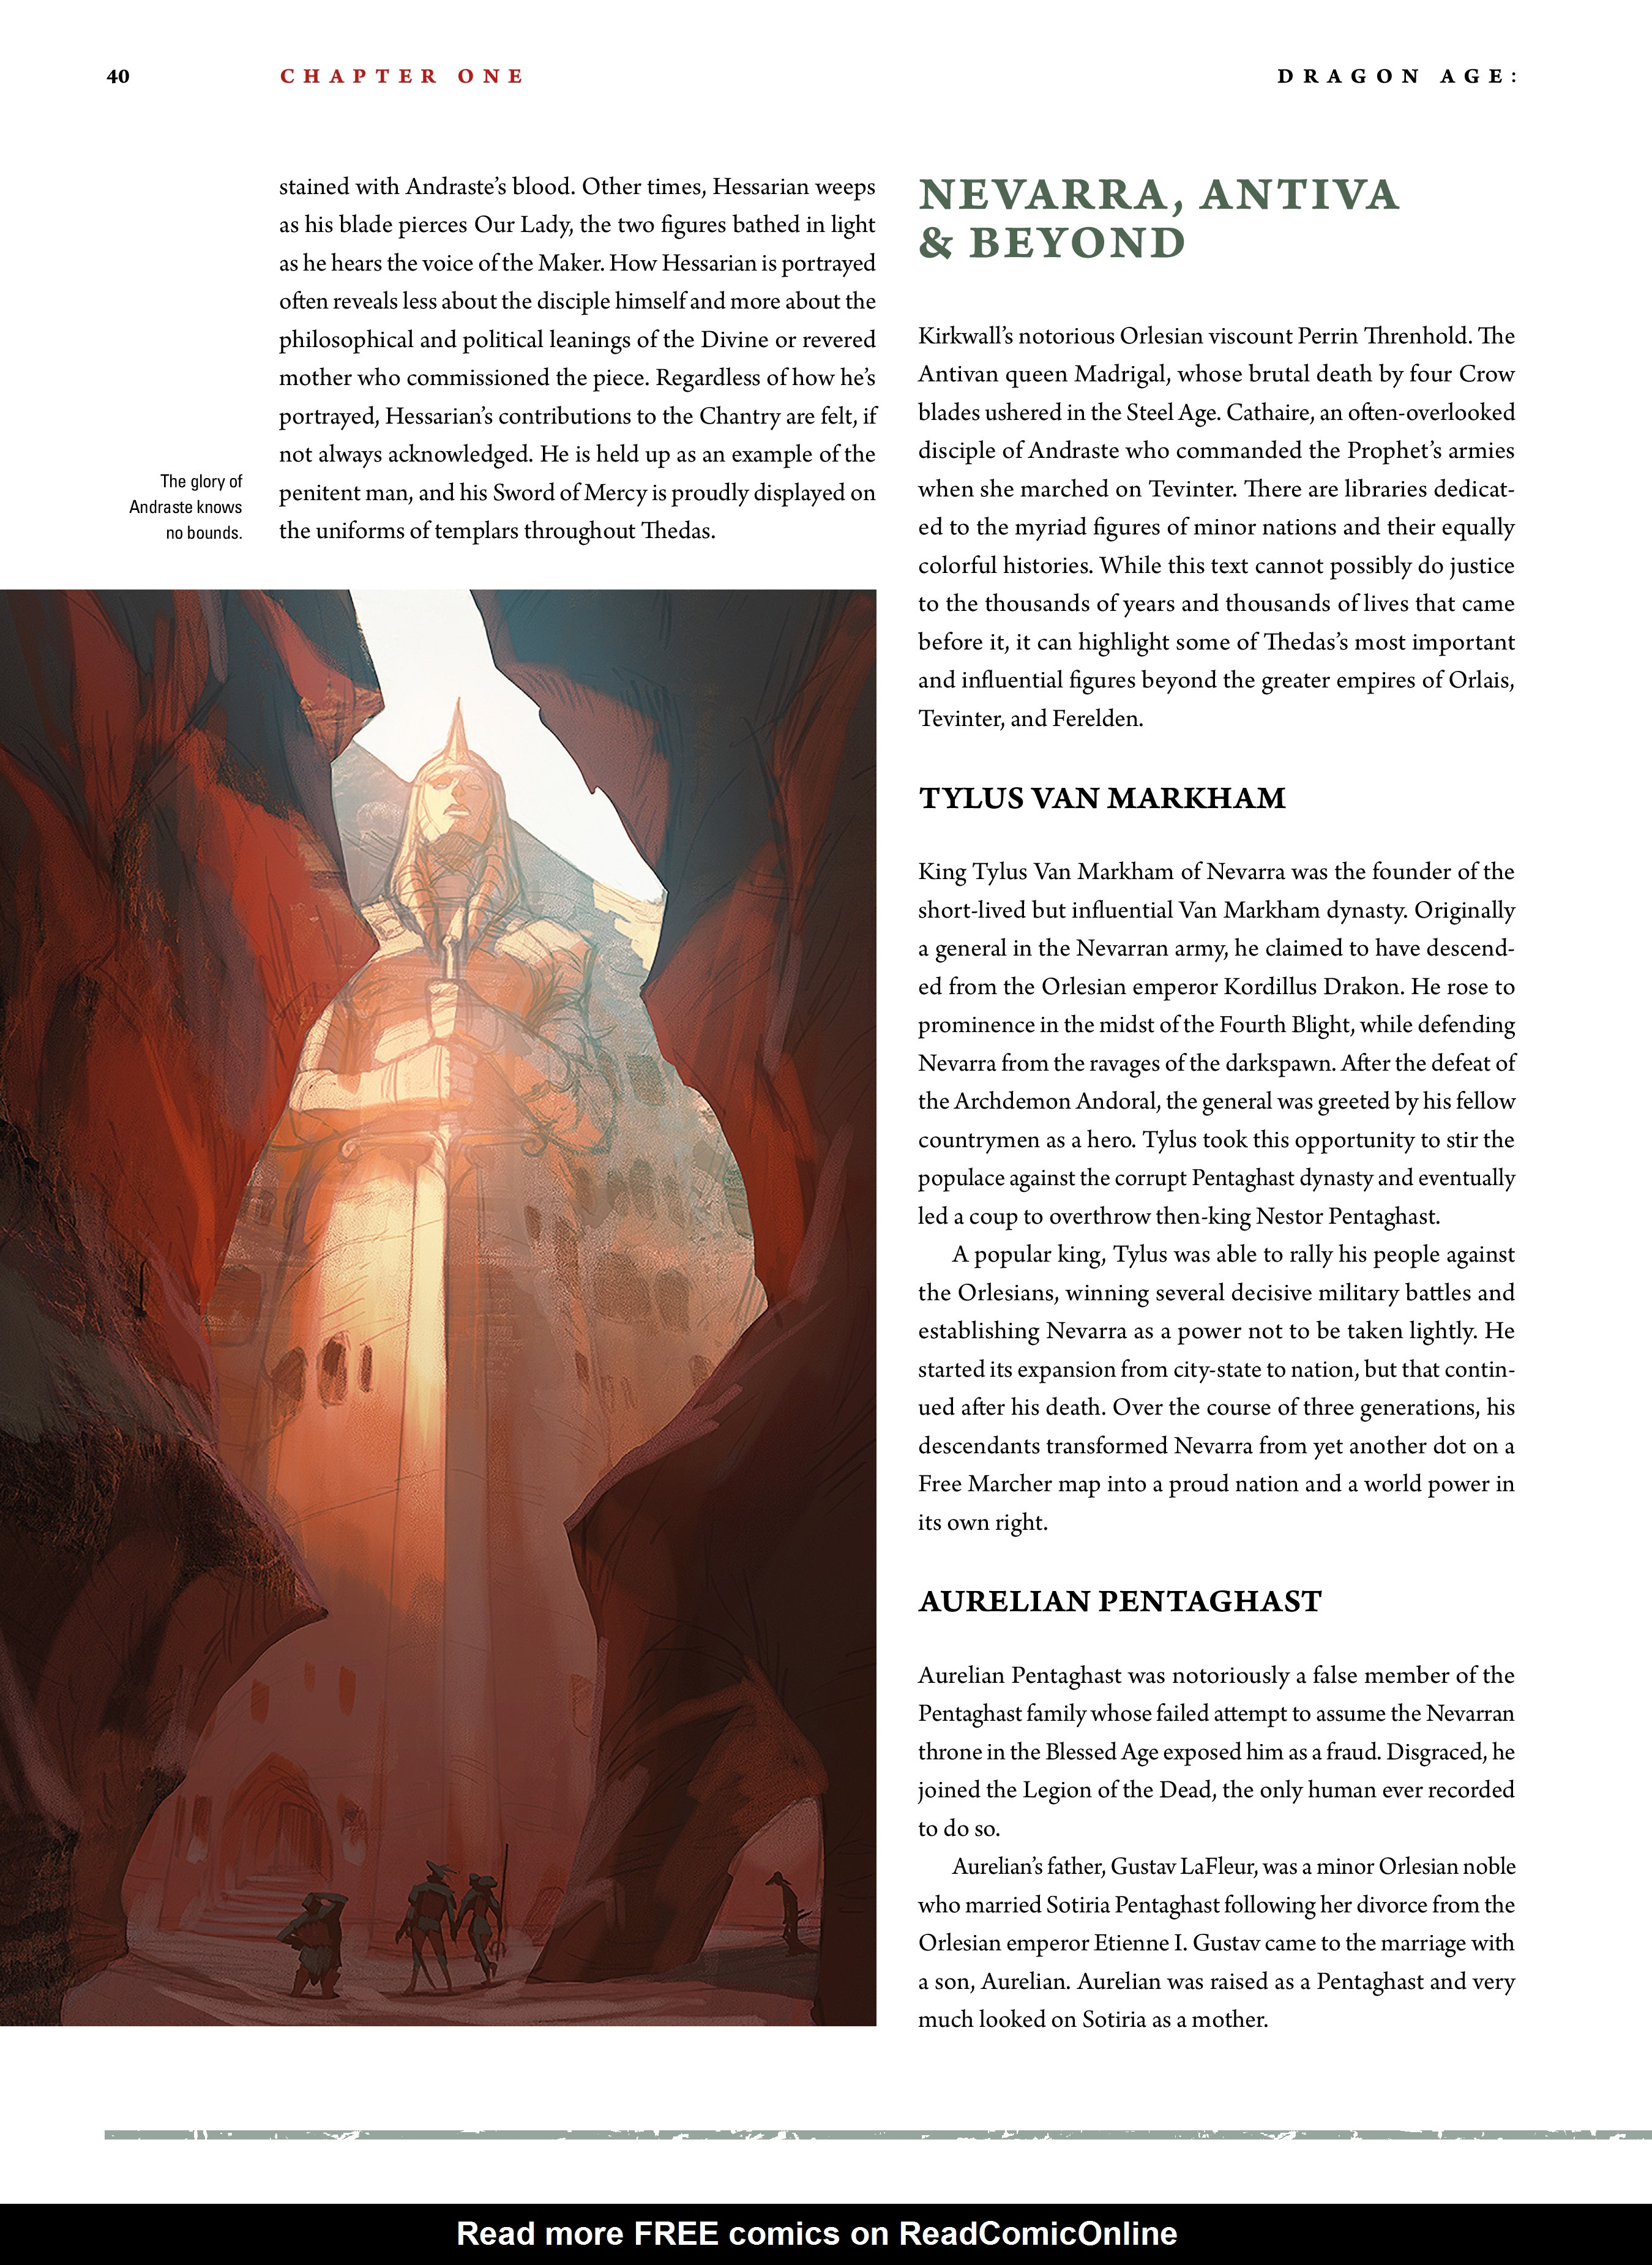 Read online Dragon Age: The World of Thedas comic -  Issue # TPB 2 - 37